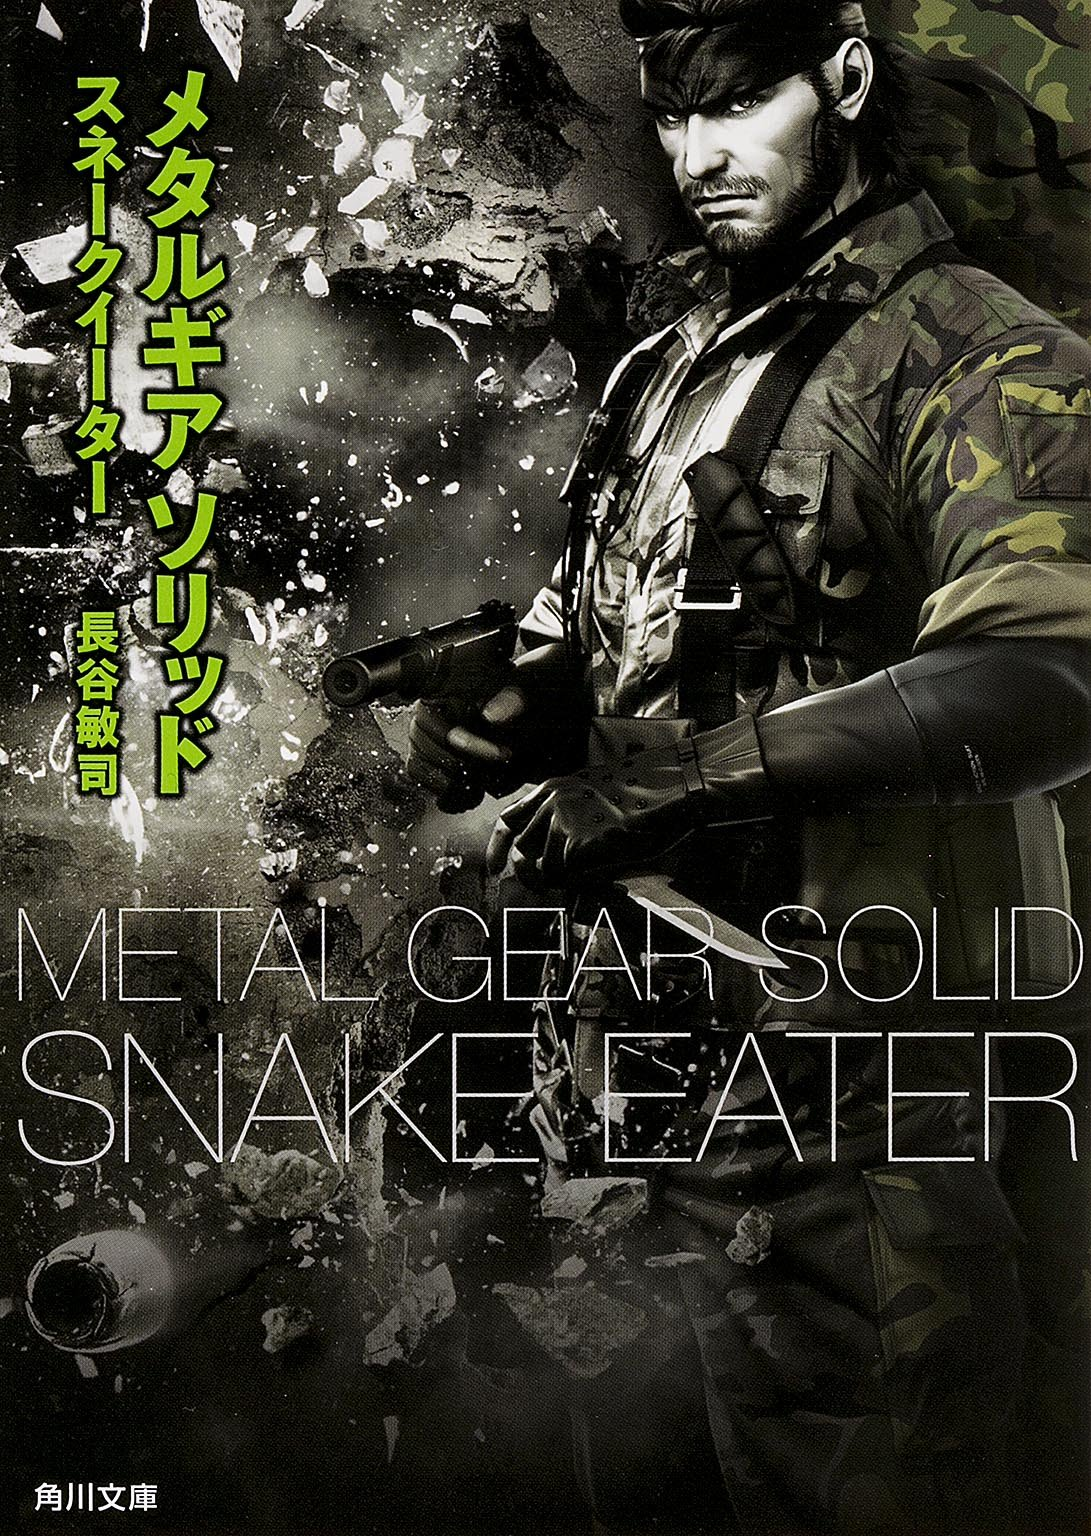 Download Metal Gear Solid Snake Eater Novel Japan Import ebook